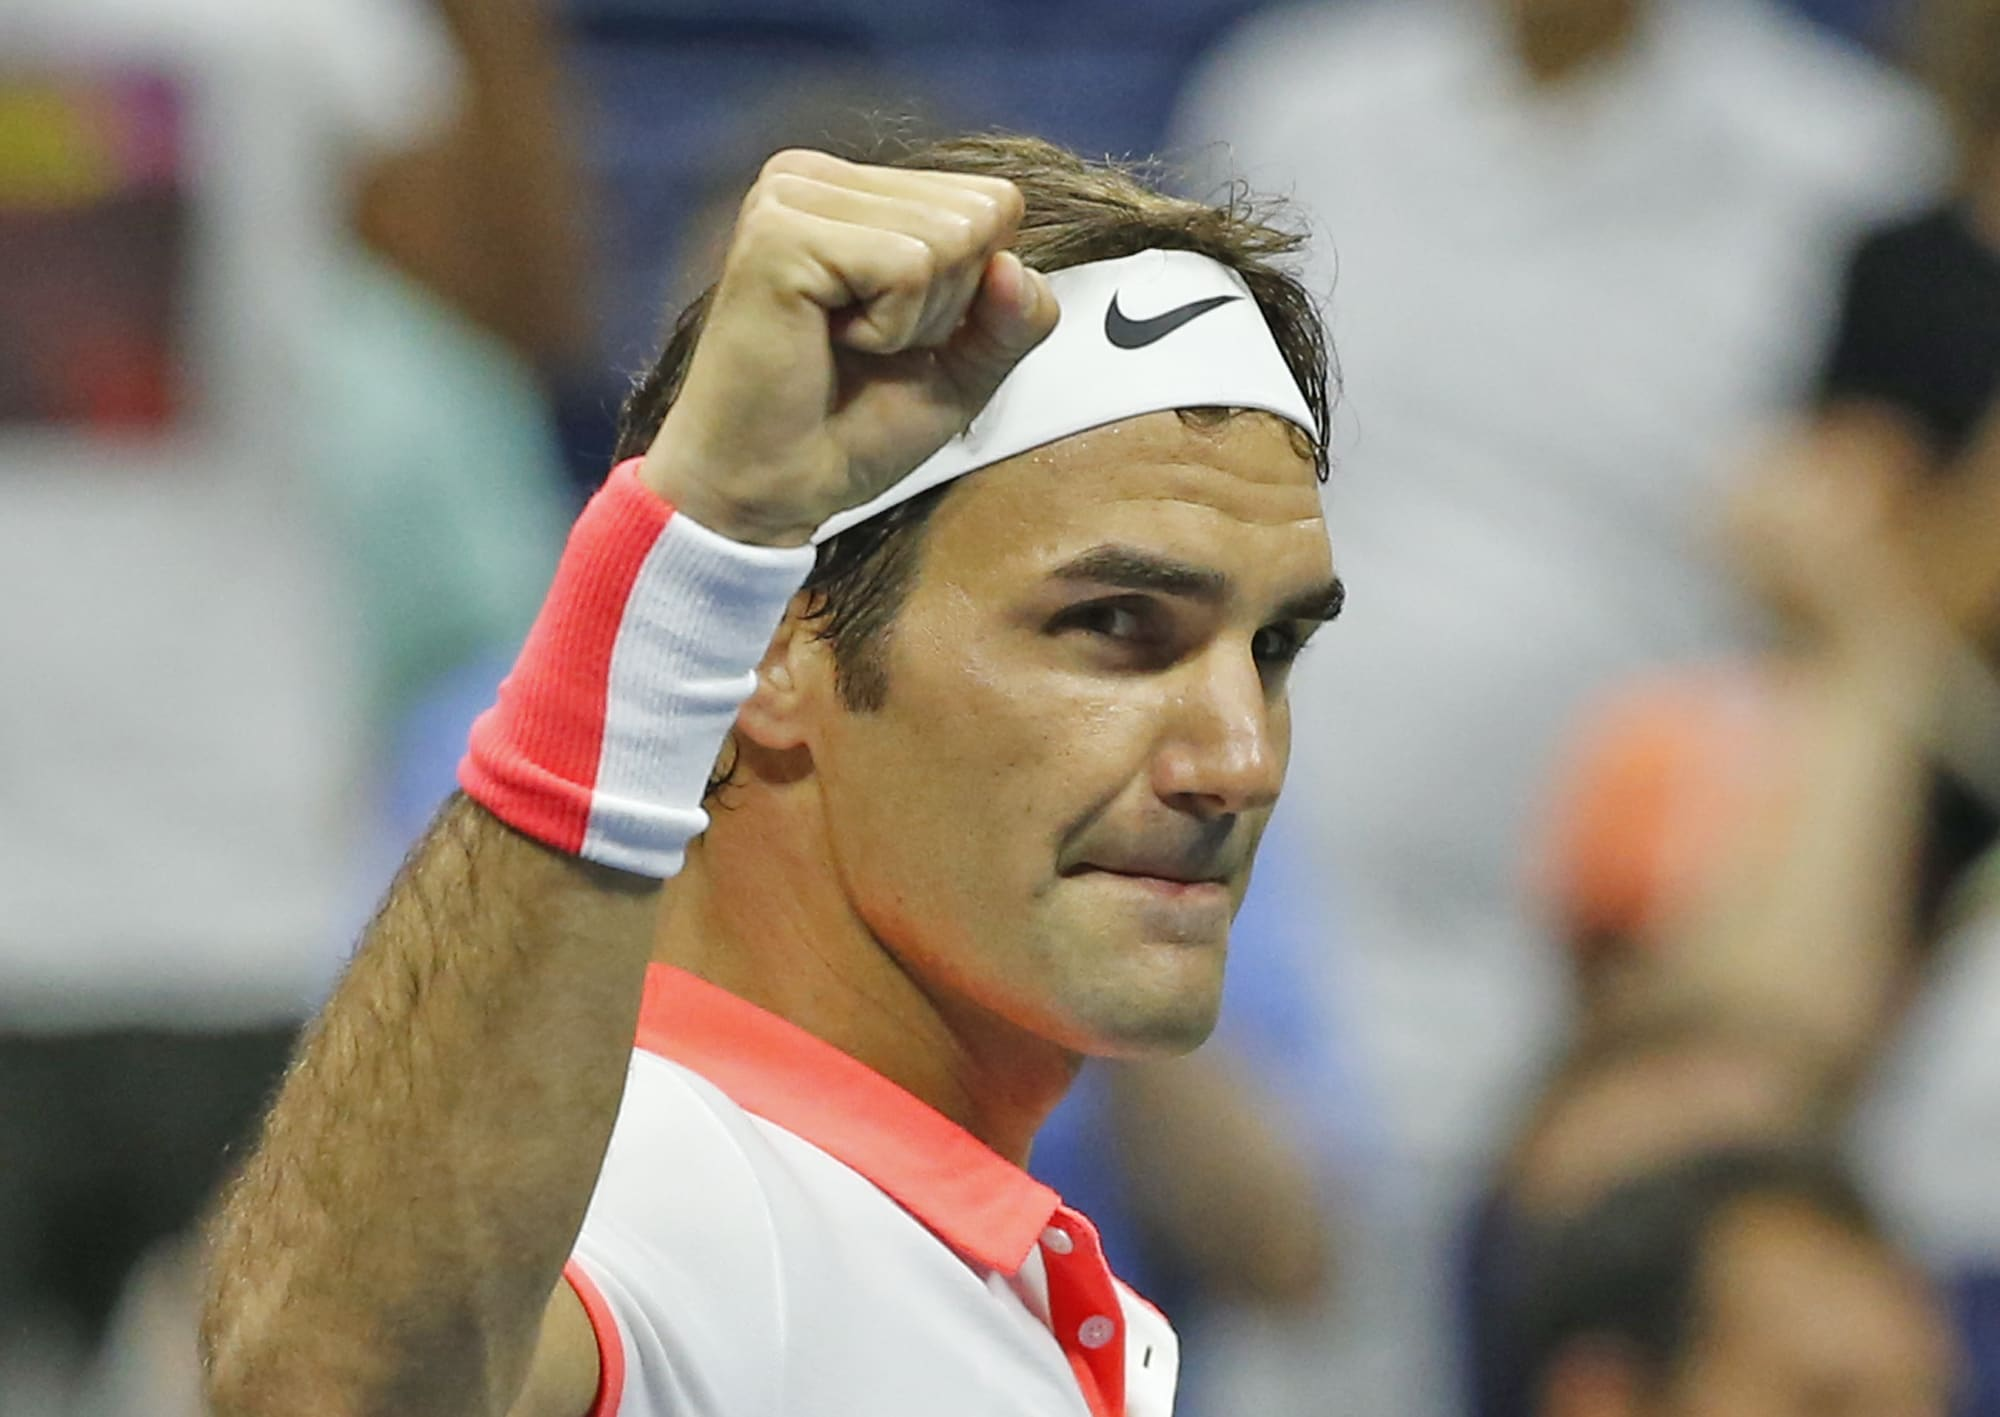 Roger Federer, of Switzerland, reacts after winning his fourth round match against John Isner, 7-6, 7-6, 7-5, at the U.S. Open tennis tournament in New York, Monday, Sept. 7, 2015. (AP Photo/Kathy Willens)